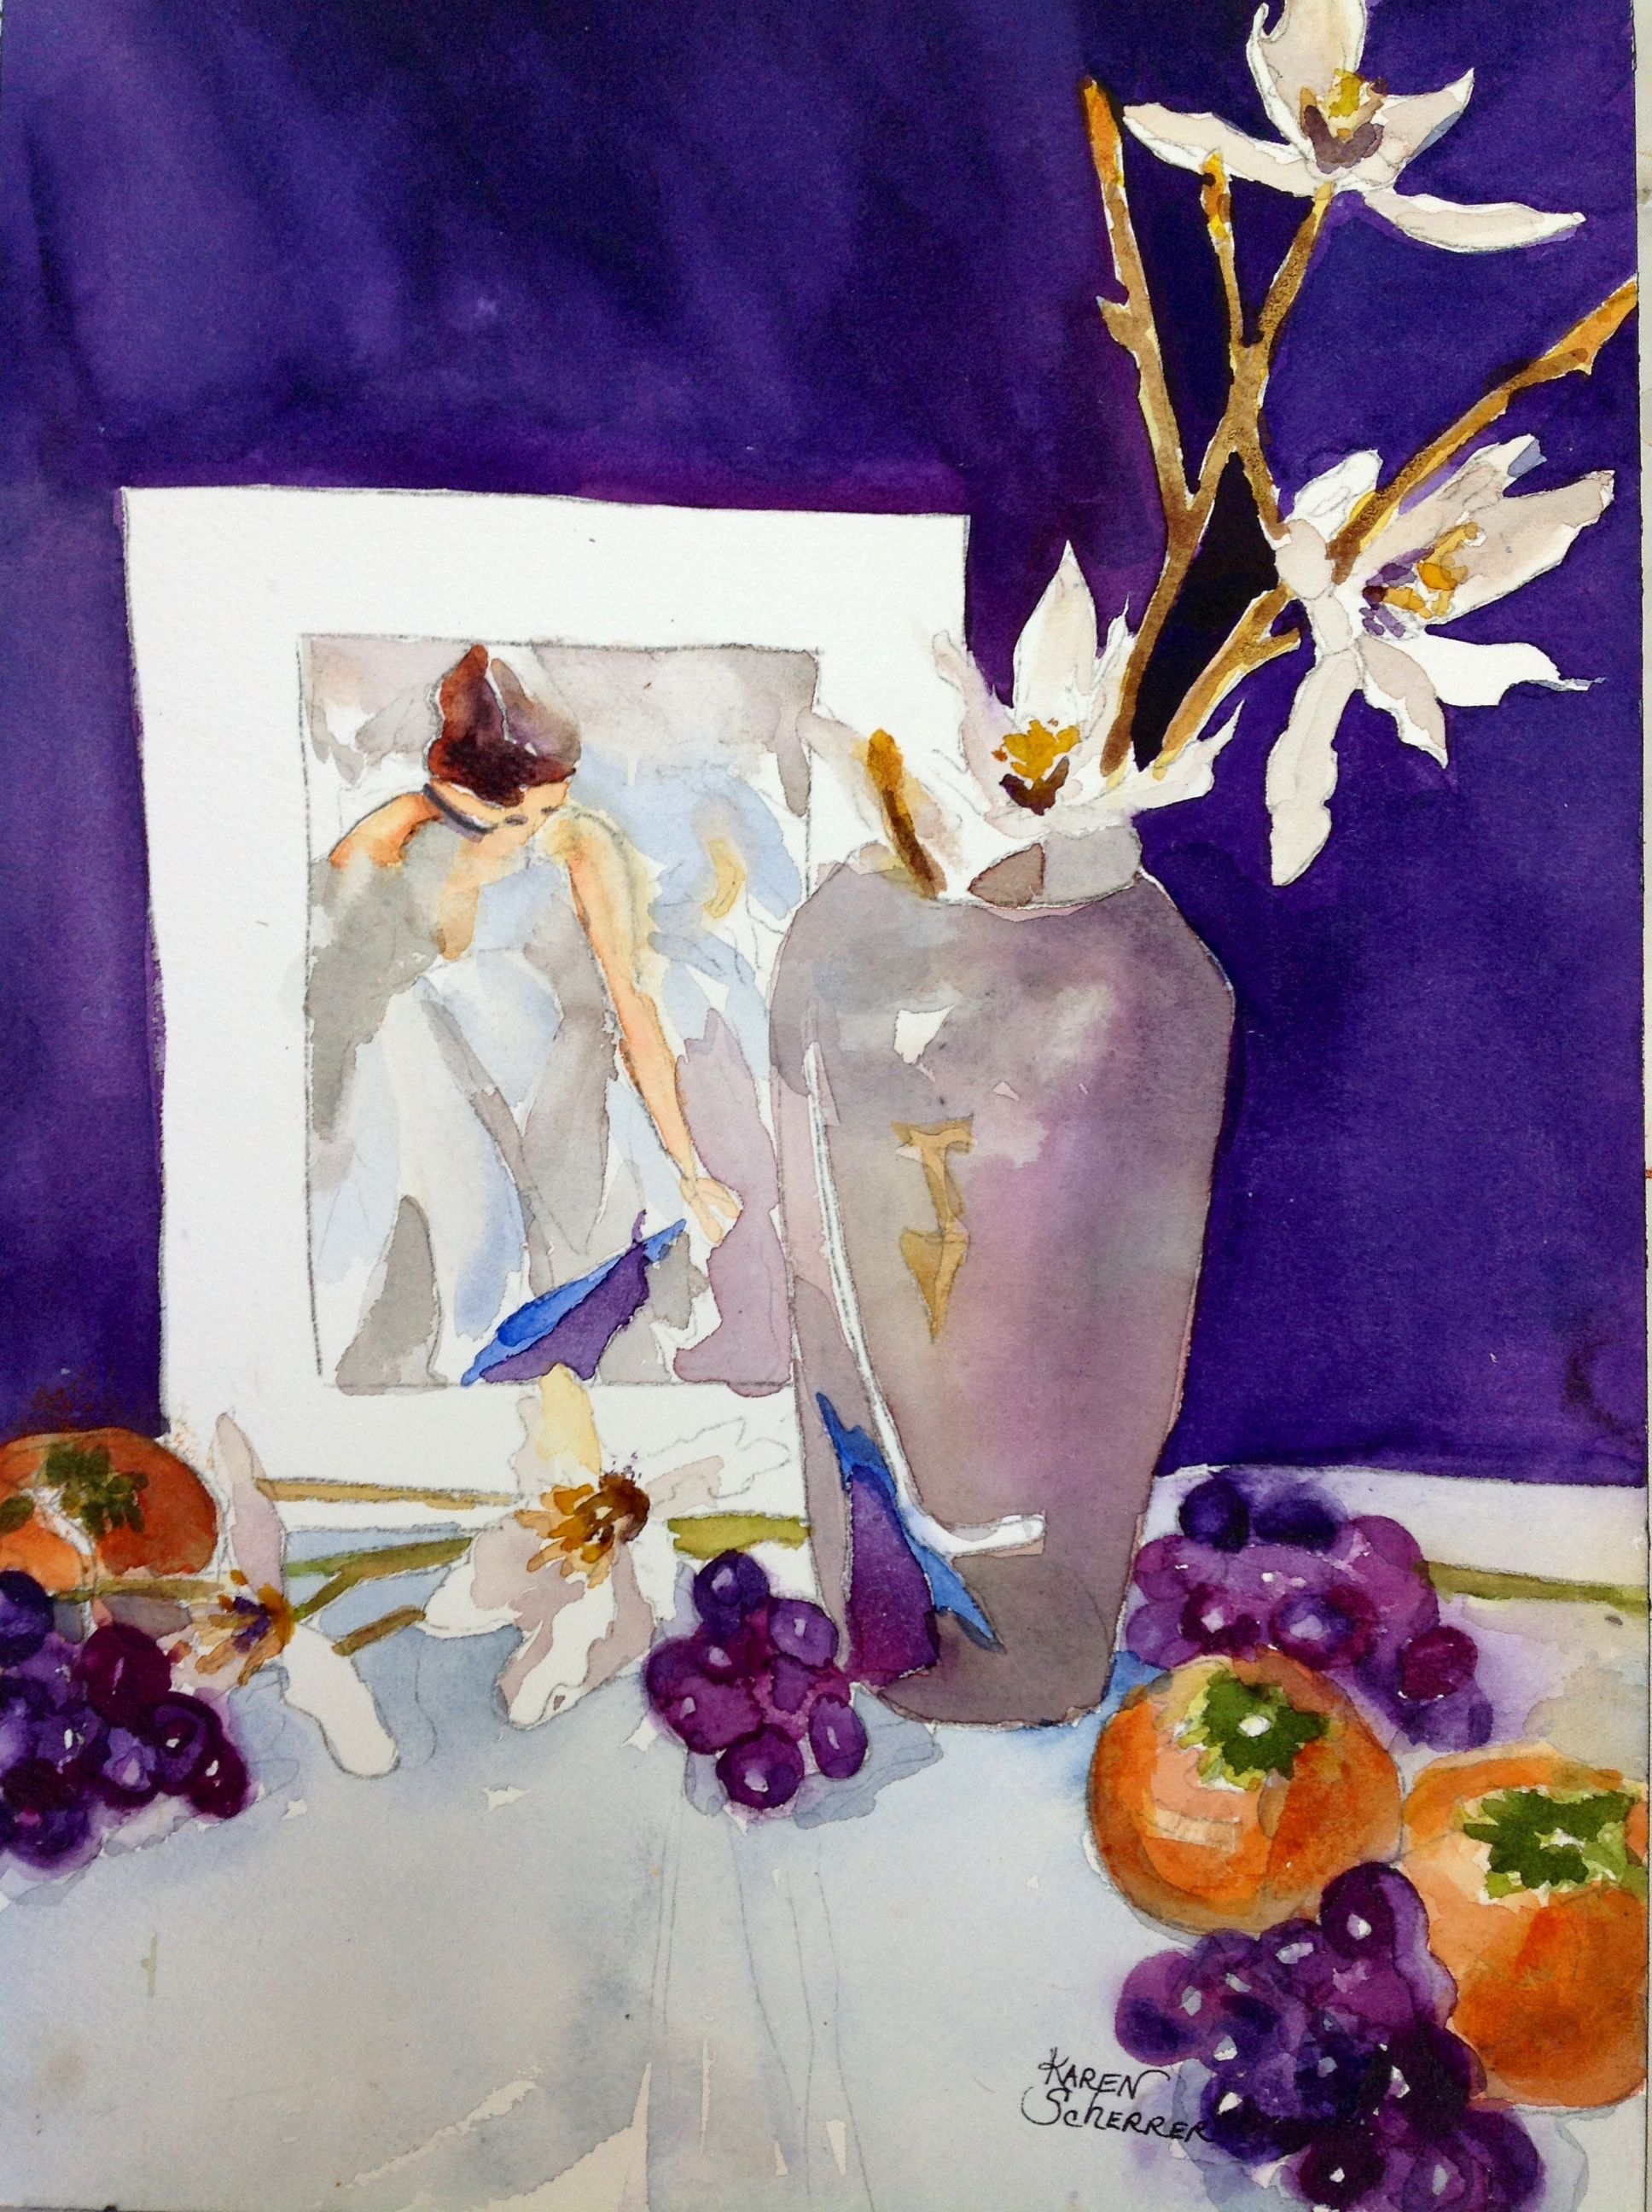 Watercolor artist in texas -  Painting Within A Painting By Texas Watercolor Artist Karen Scherrer